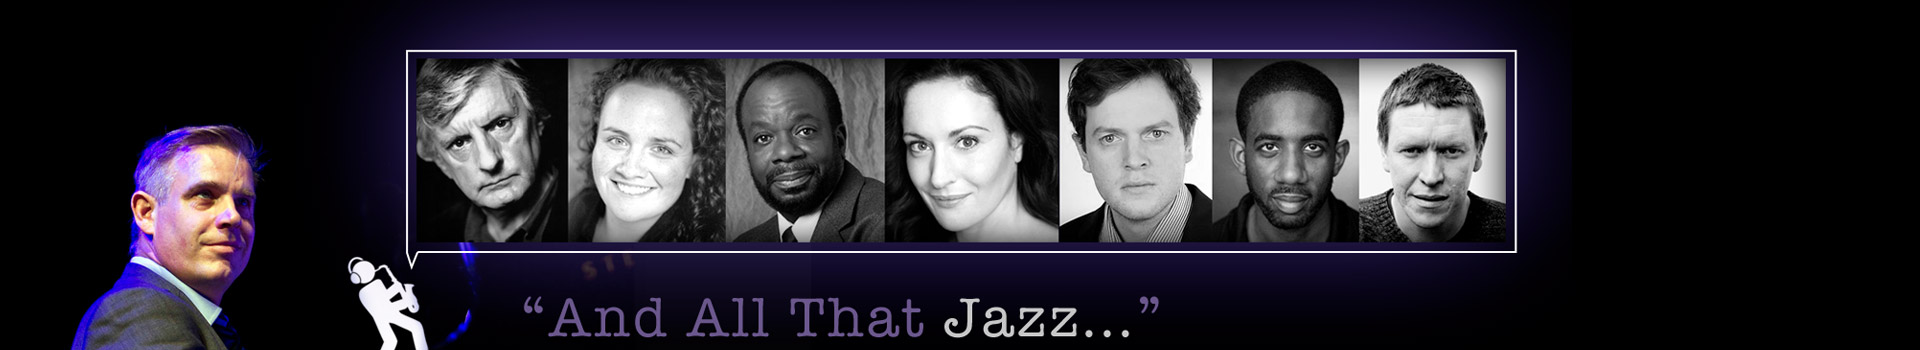 And All That Jazz tickets London St James theatre